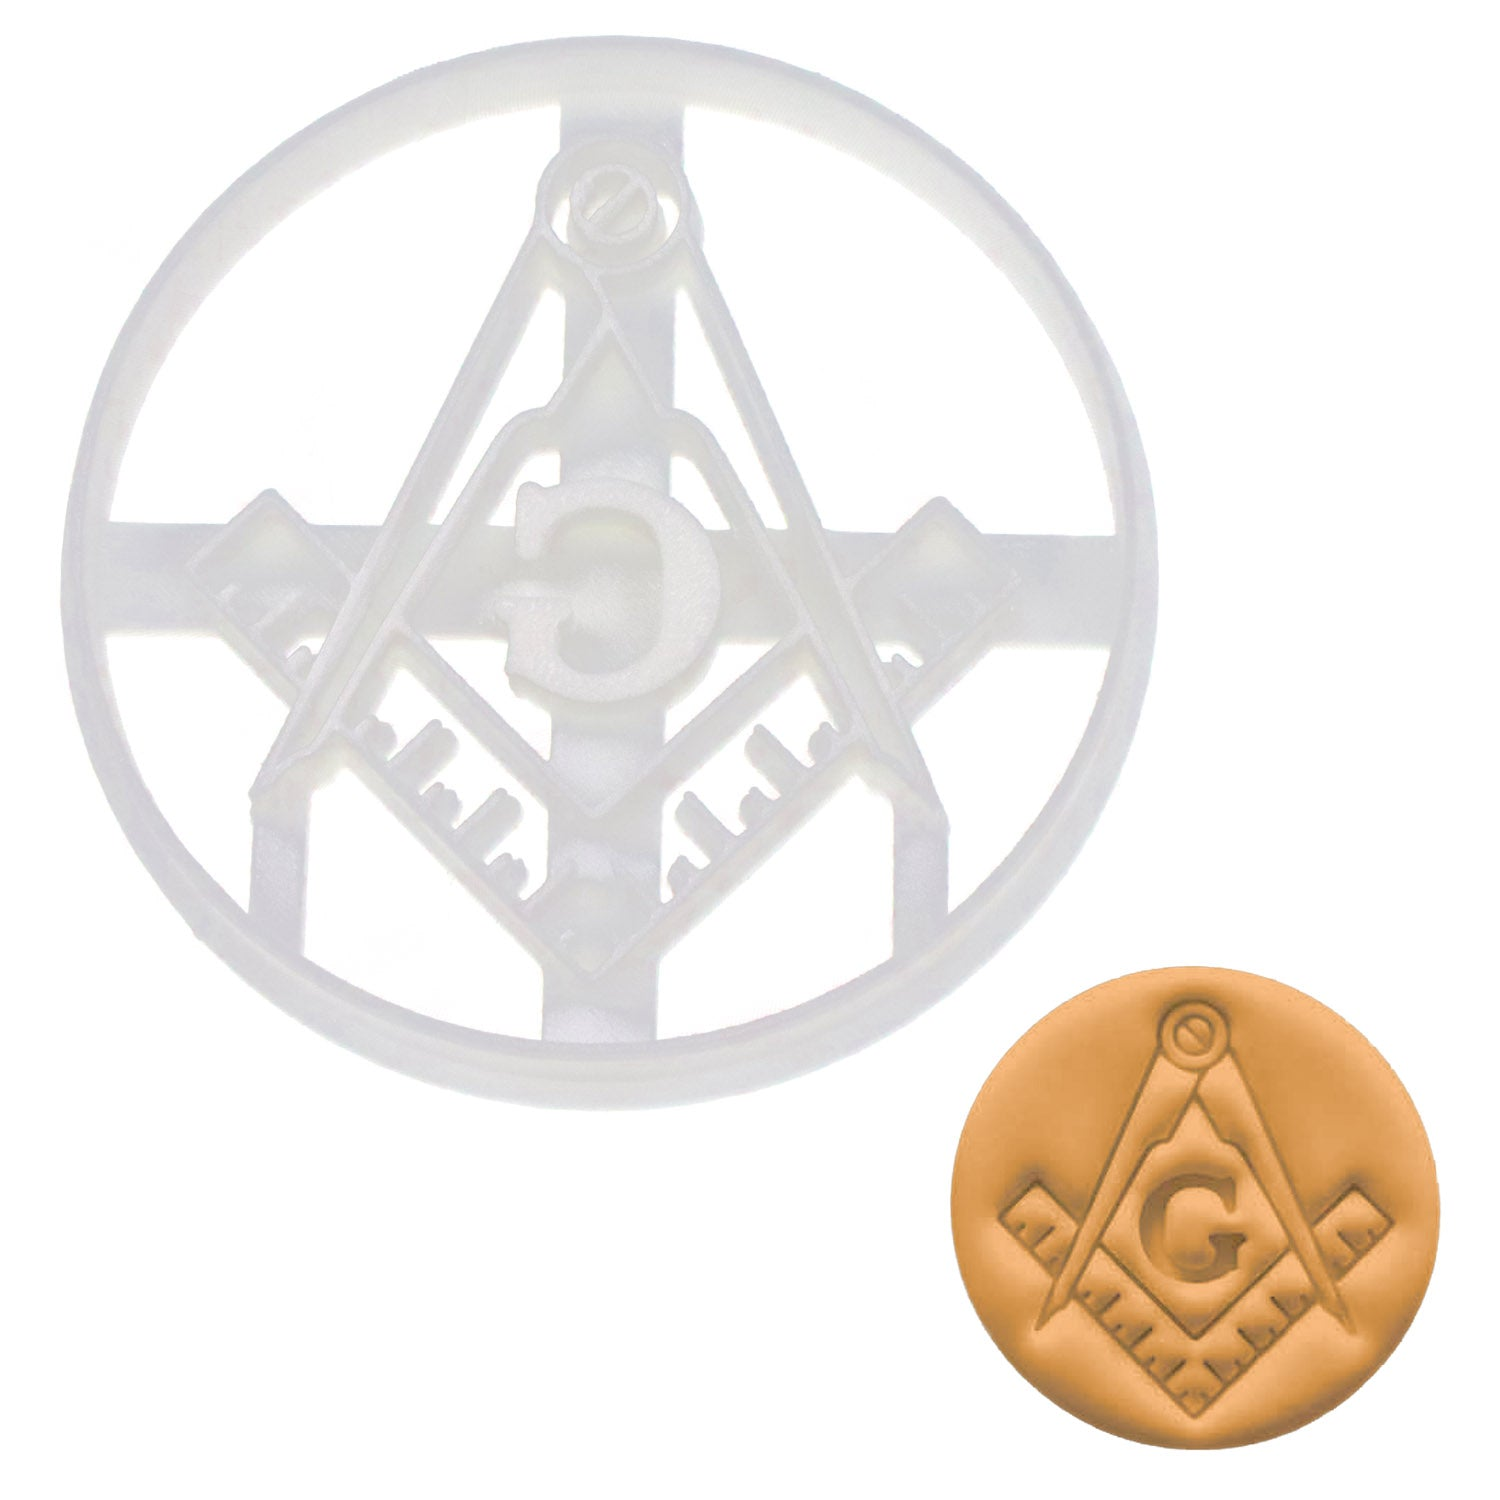 Masonic Square & Compasses Cookie Cutter